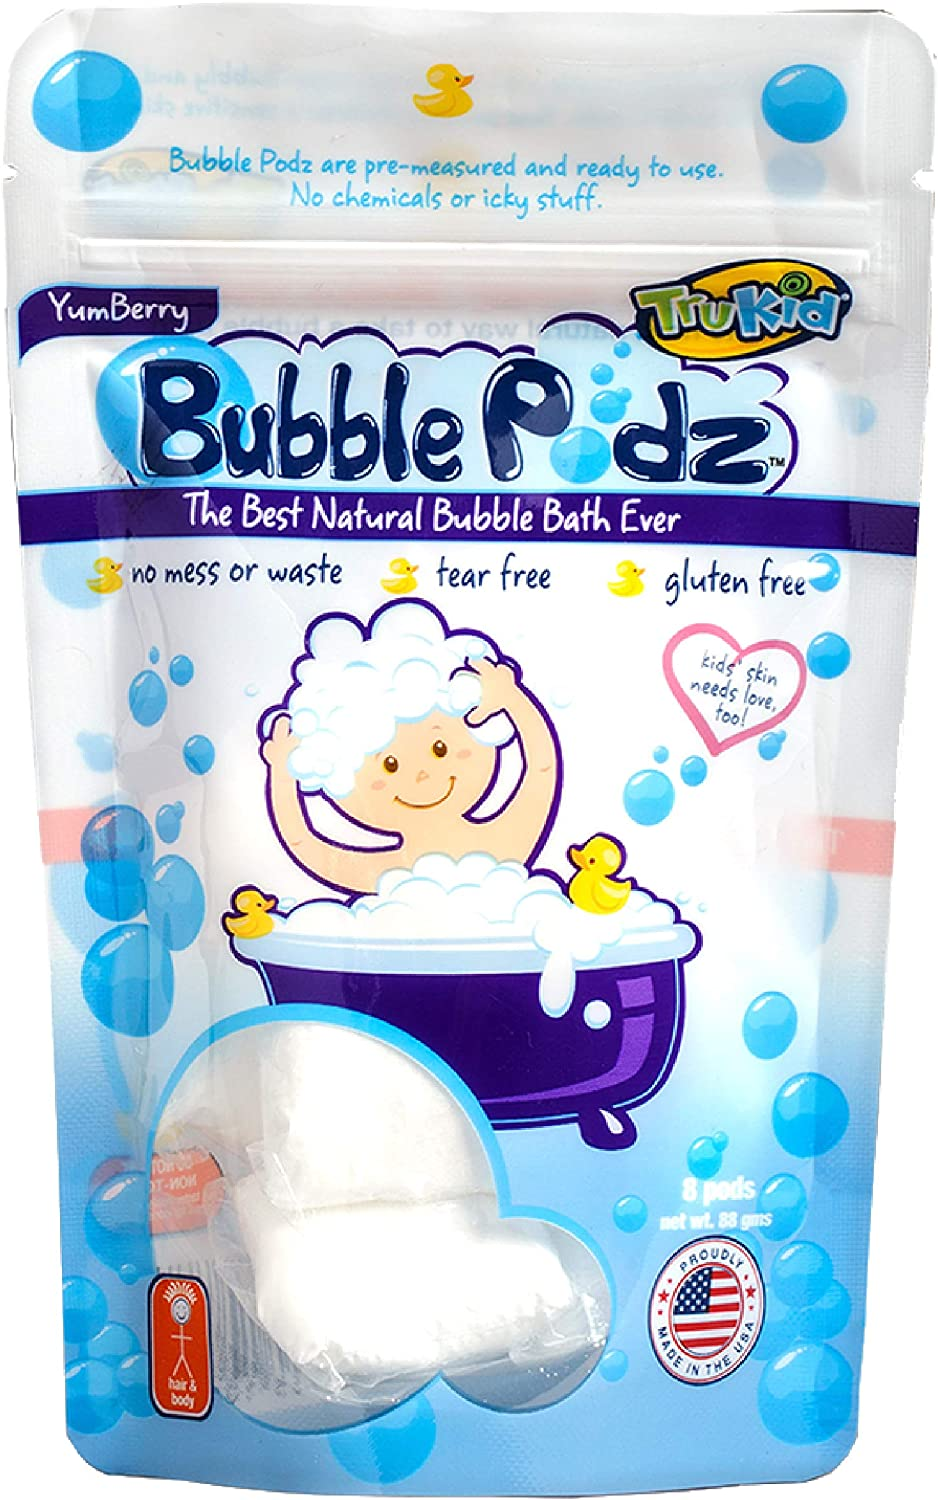 TruKid Bubble Podz for Baby Refreshing Luxury goods Bath Manufacturer direct delivery Sensitiv